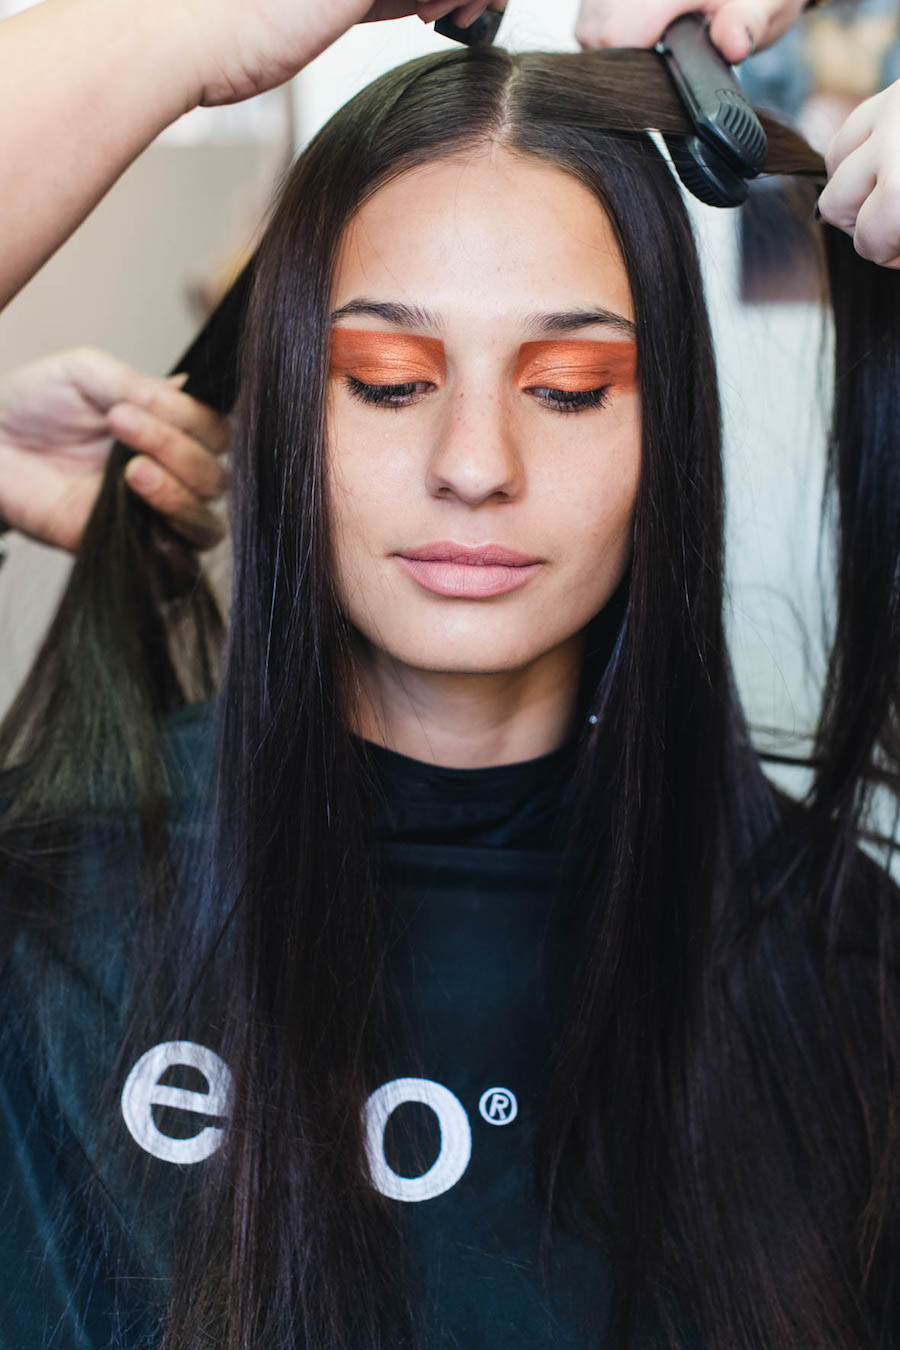 Get the look: Adelaide Fashion Festival's Opening Runway hair and beauty